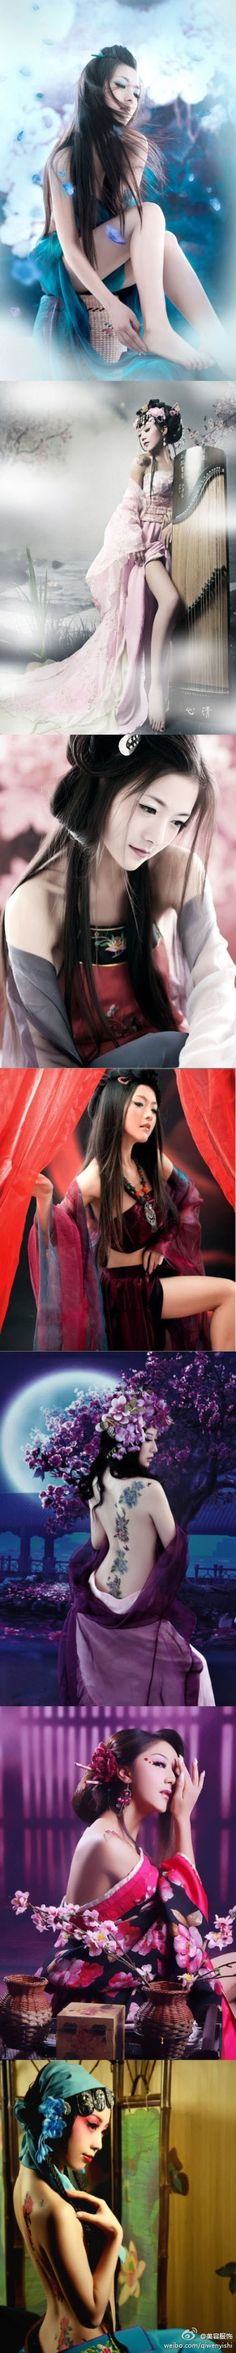 Concubines from different Chinese dynasties